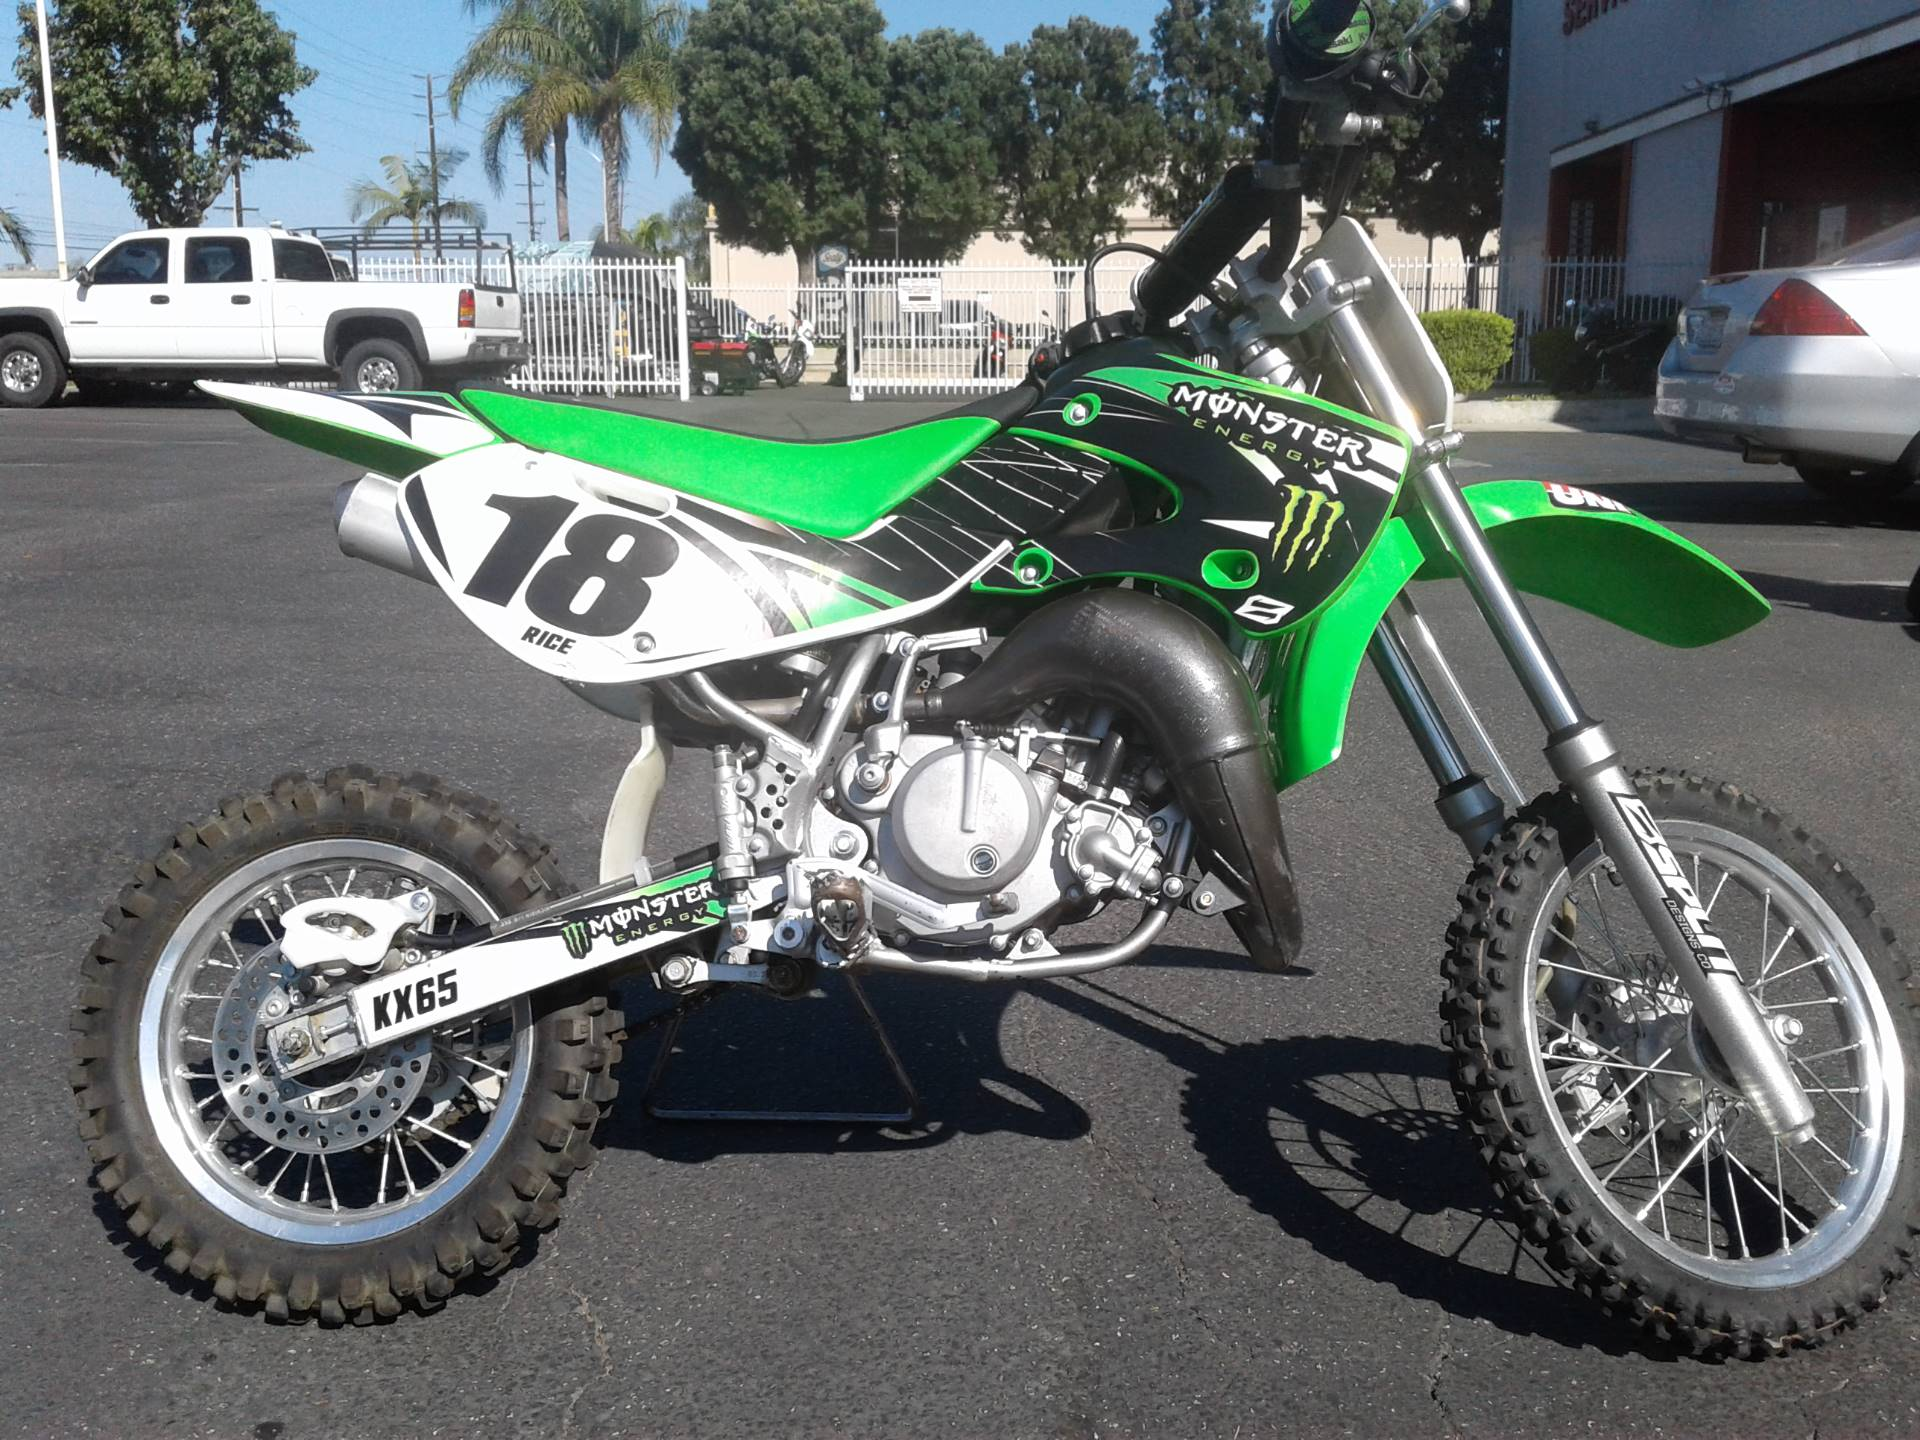 2007 Kawasaki KX65 in Orange, California